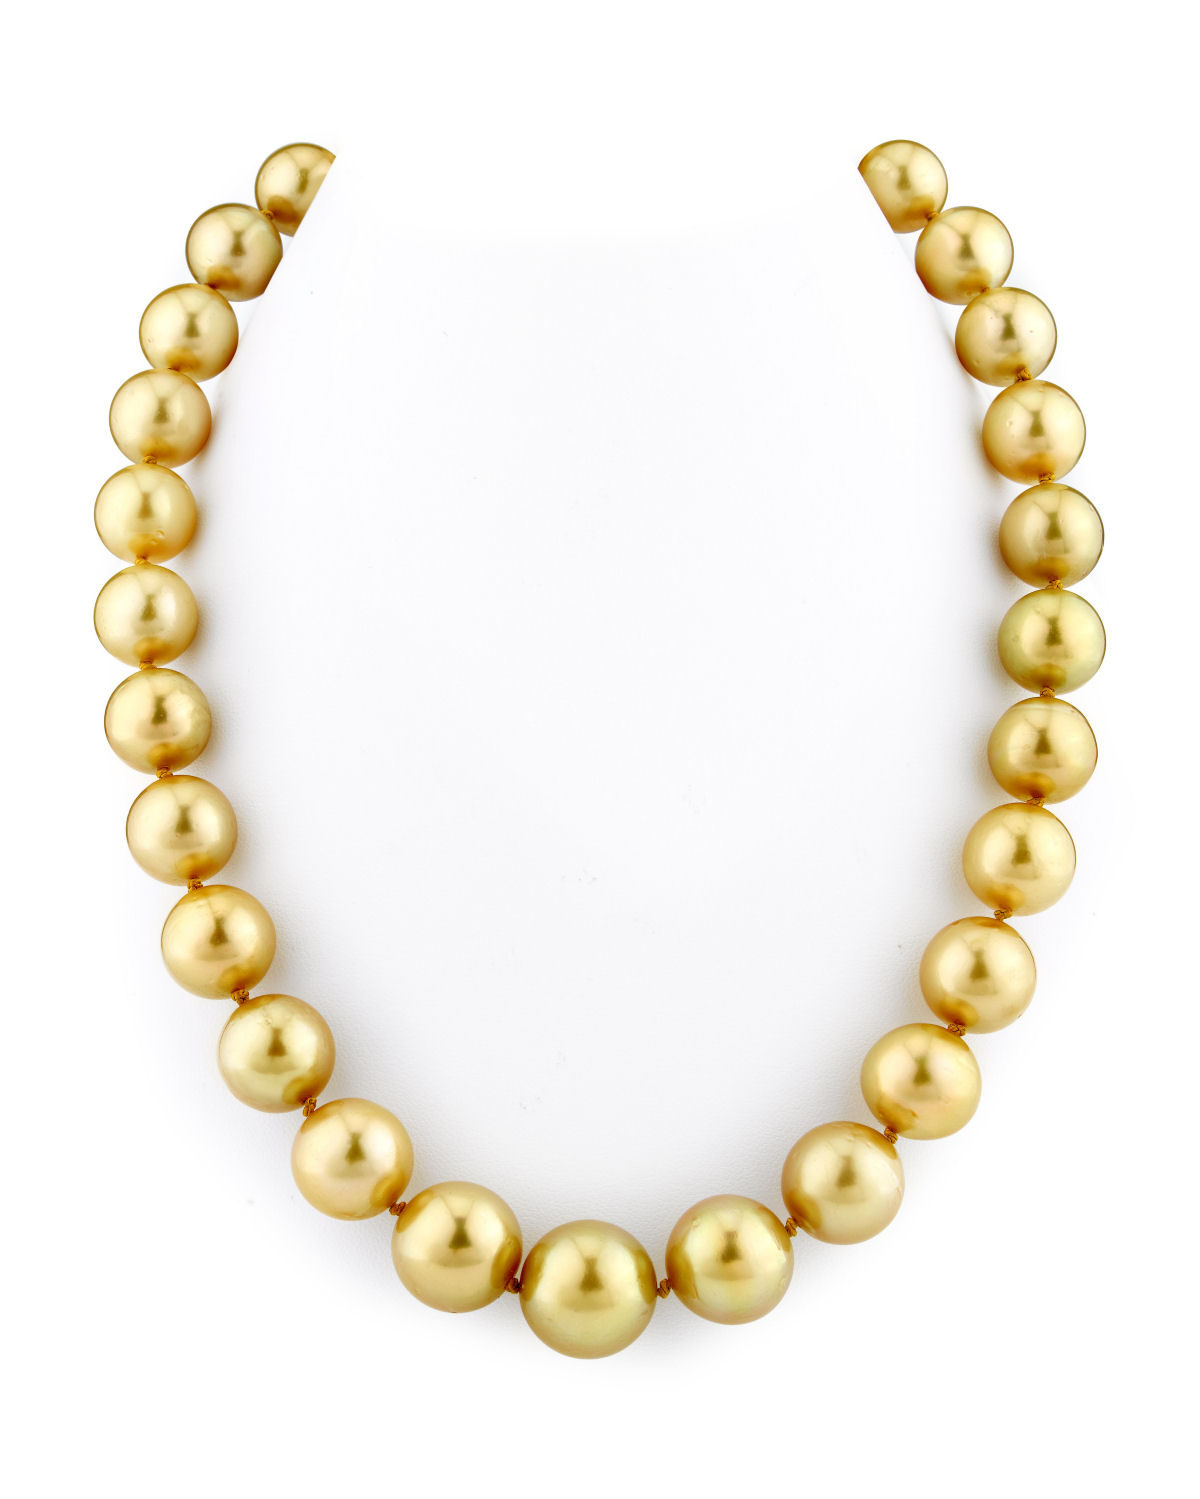 12-15mm Golden South Sea Pearl Necklace